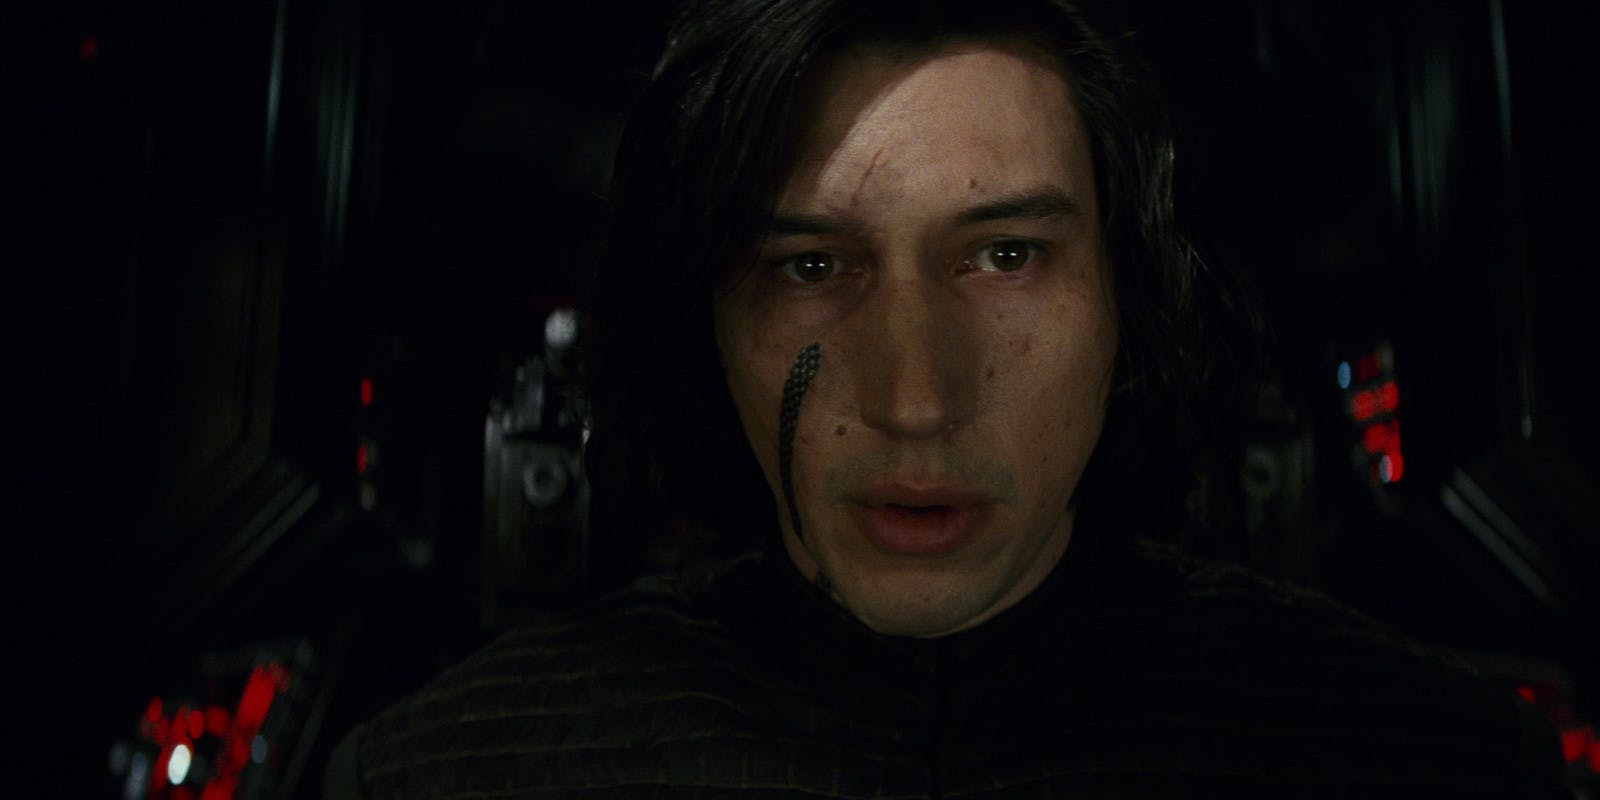 Star-Wars-the-Last-Jedi-Kylo-Ren-Piloting